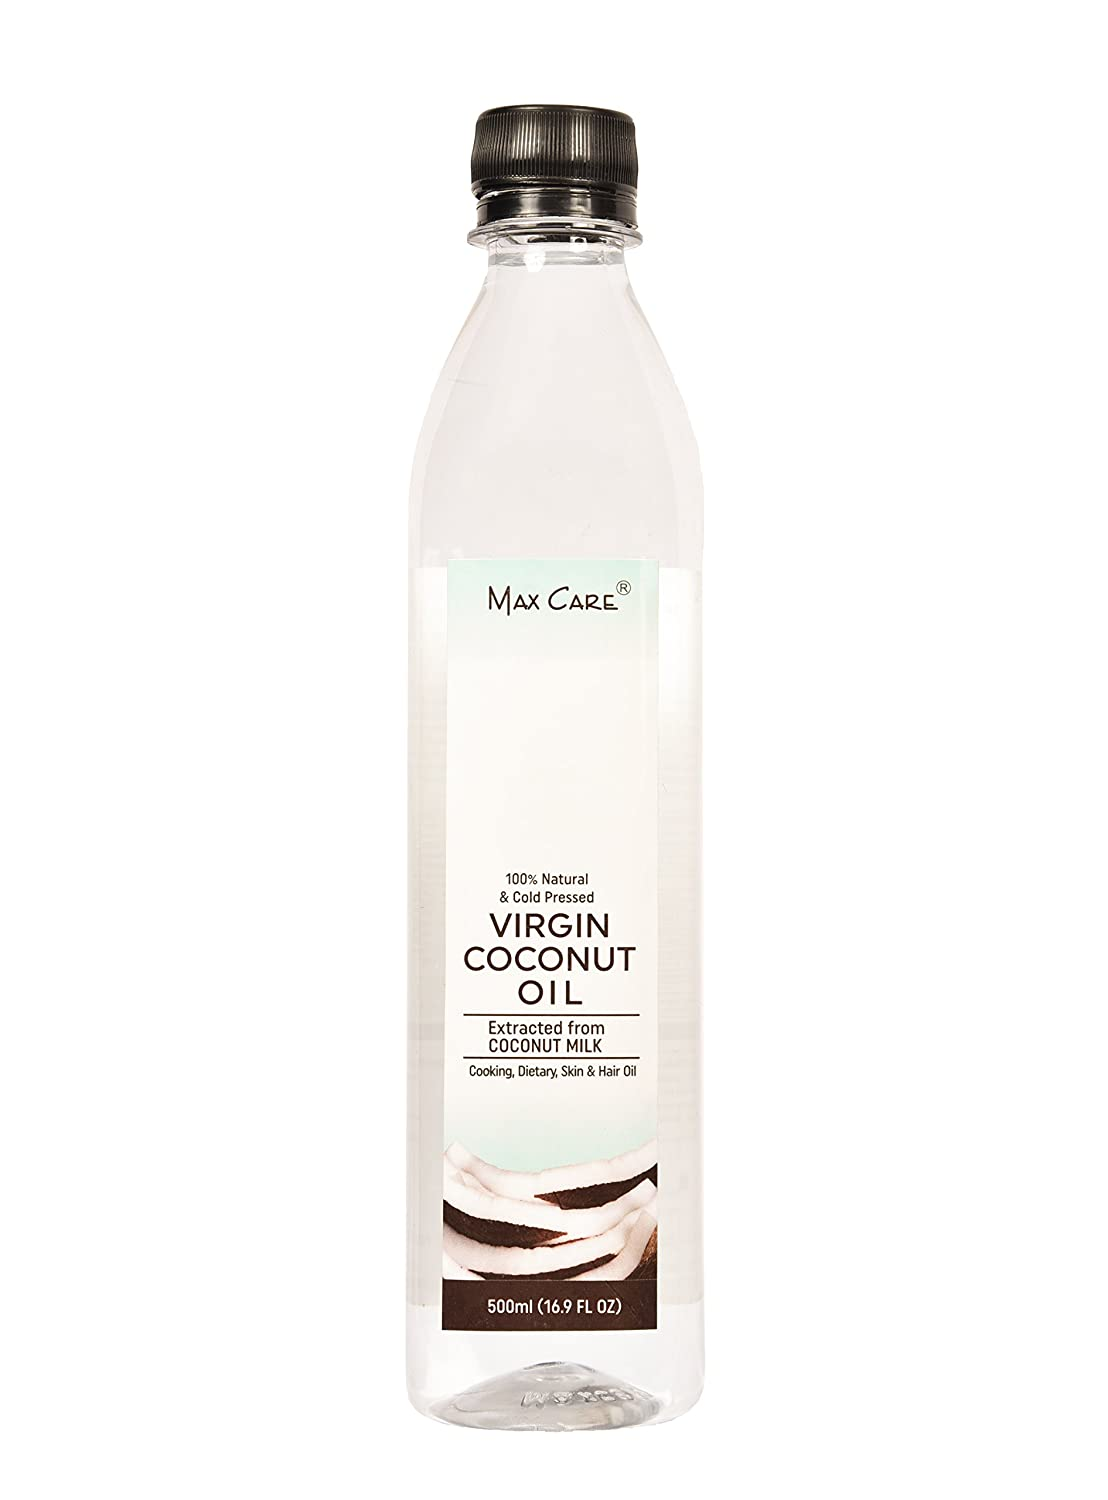 Max Care Cold Pressed Virgin Coconut Oil, 500ml